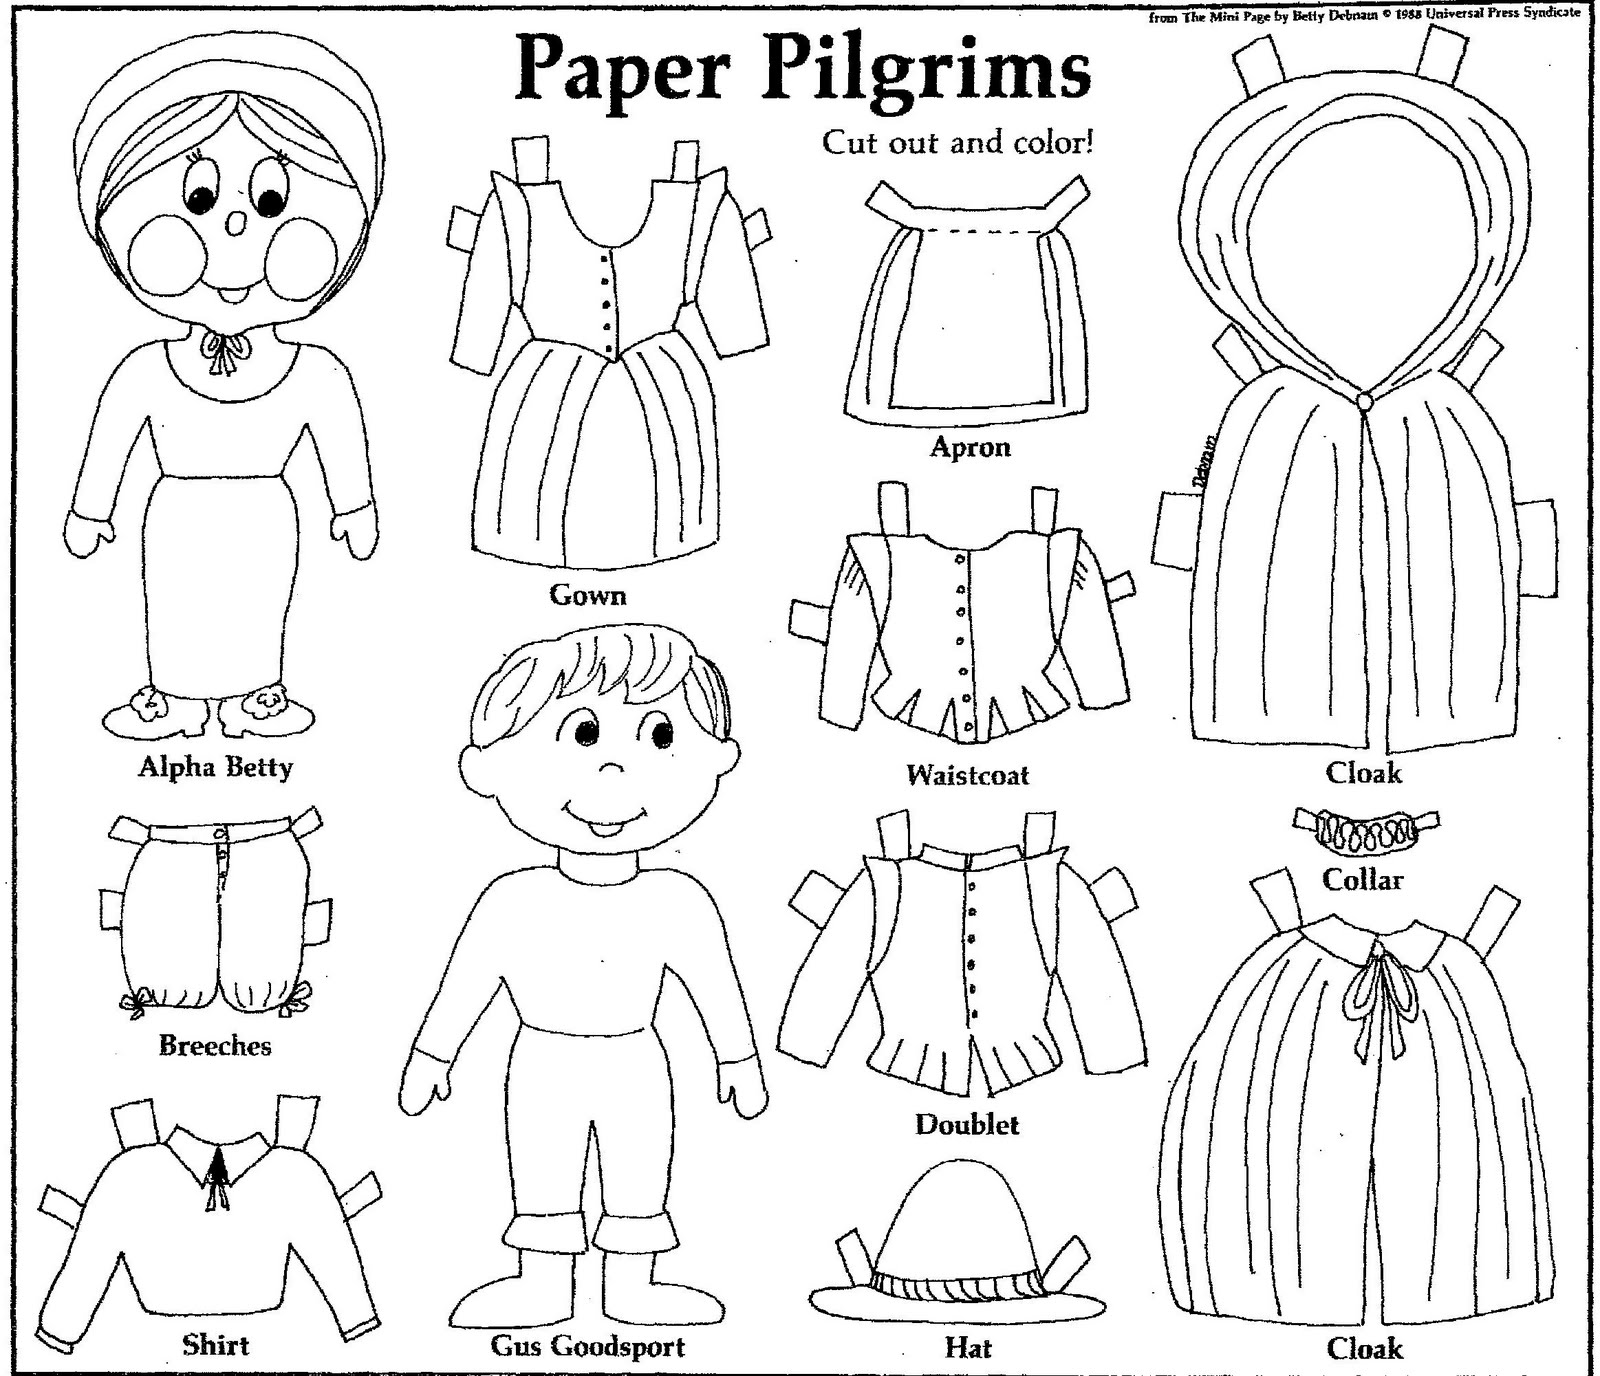 Mostly Paper Dolls Paper Pilgrims To Cut Out And Color